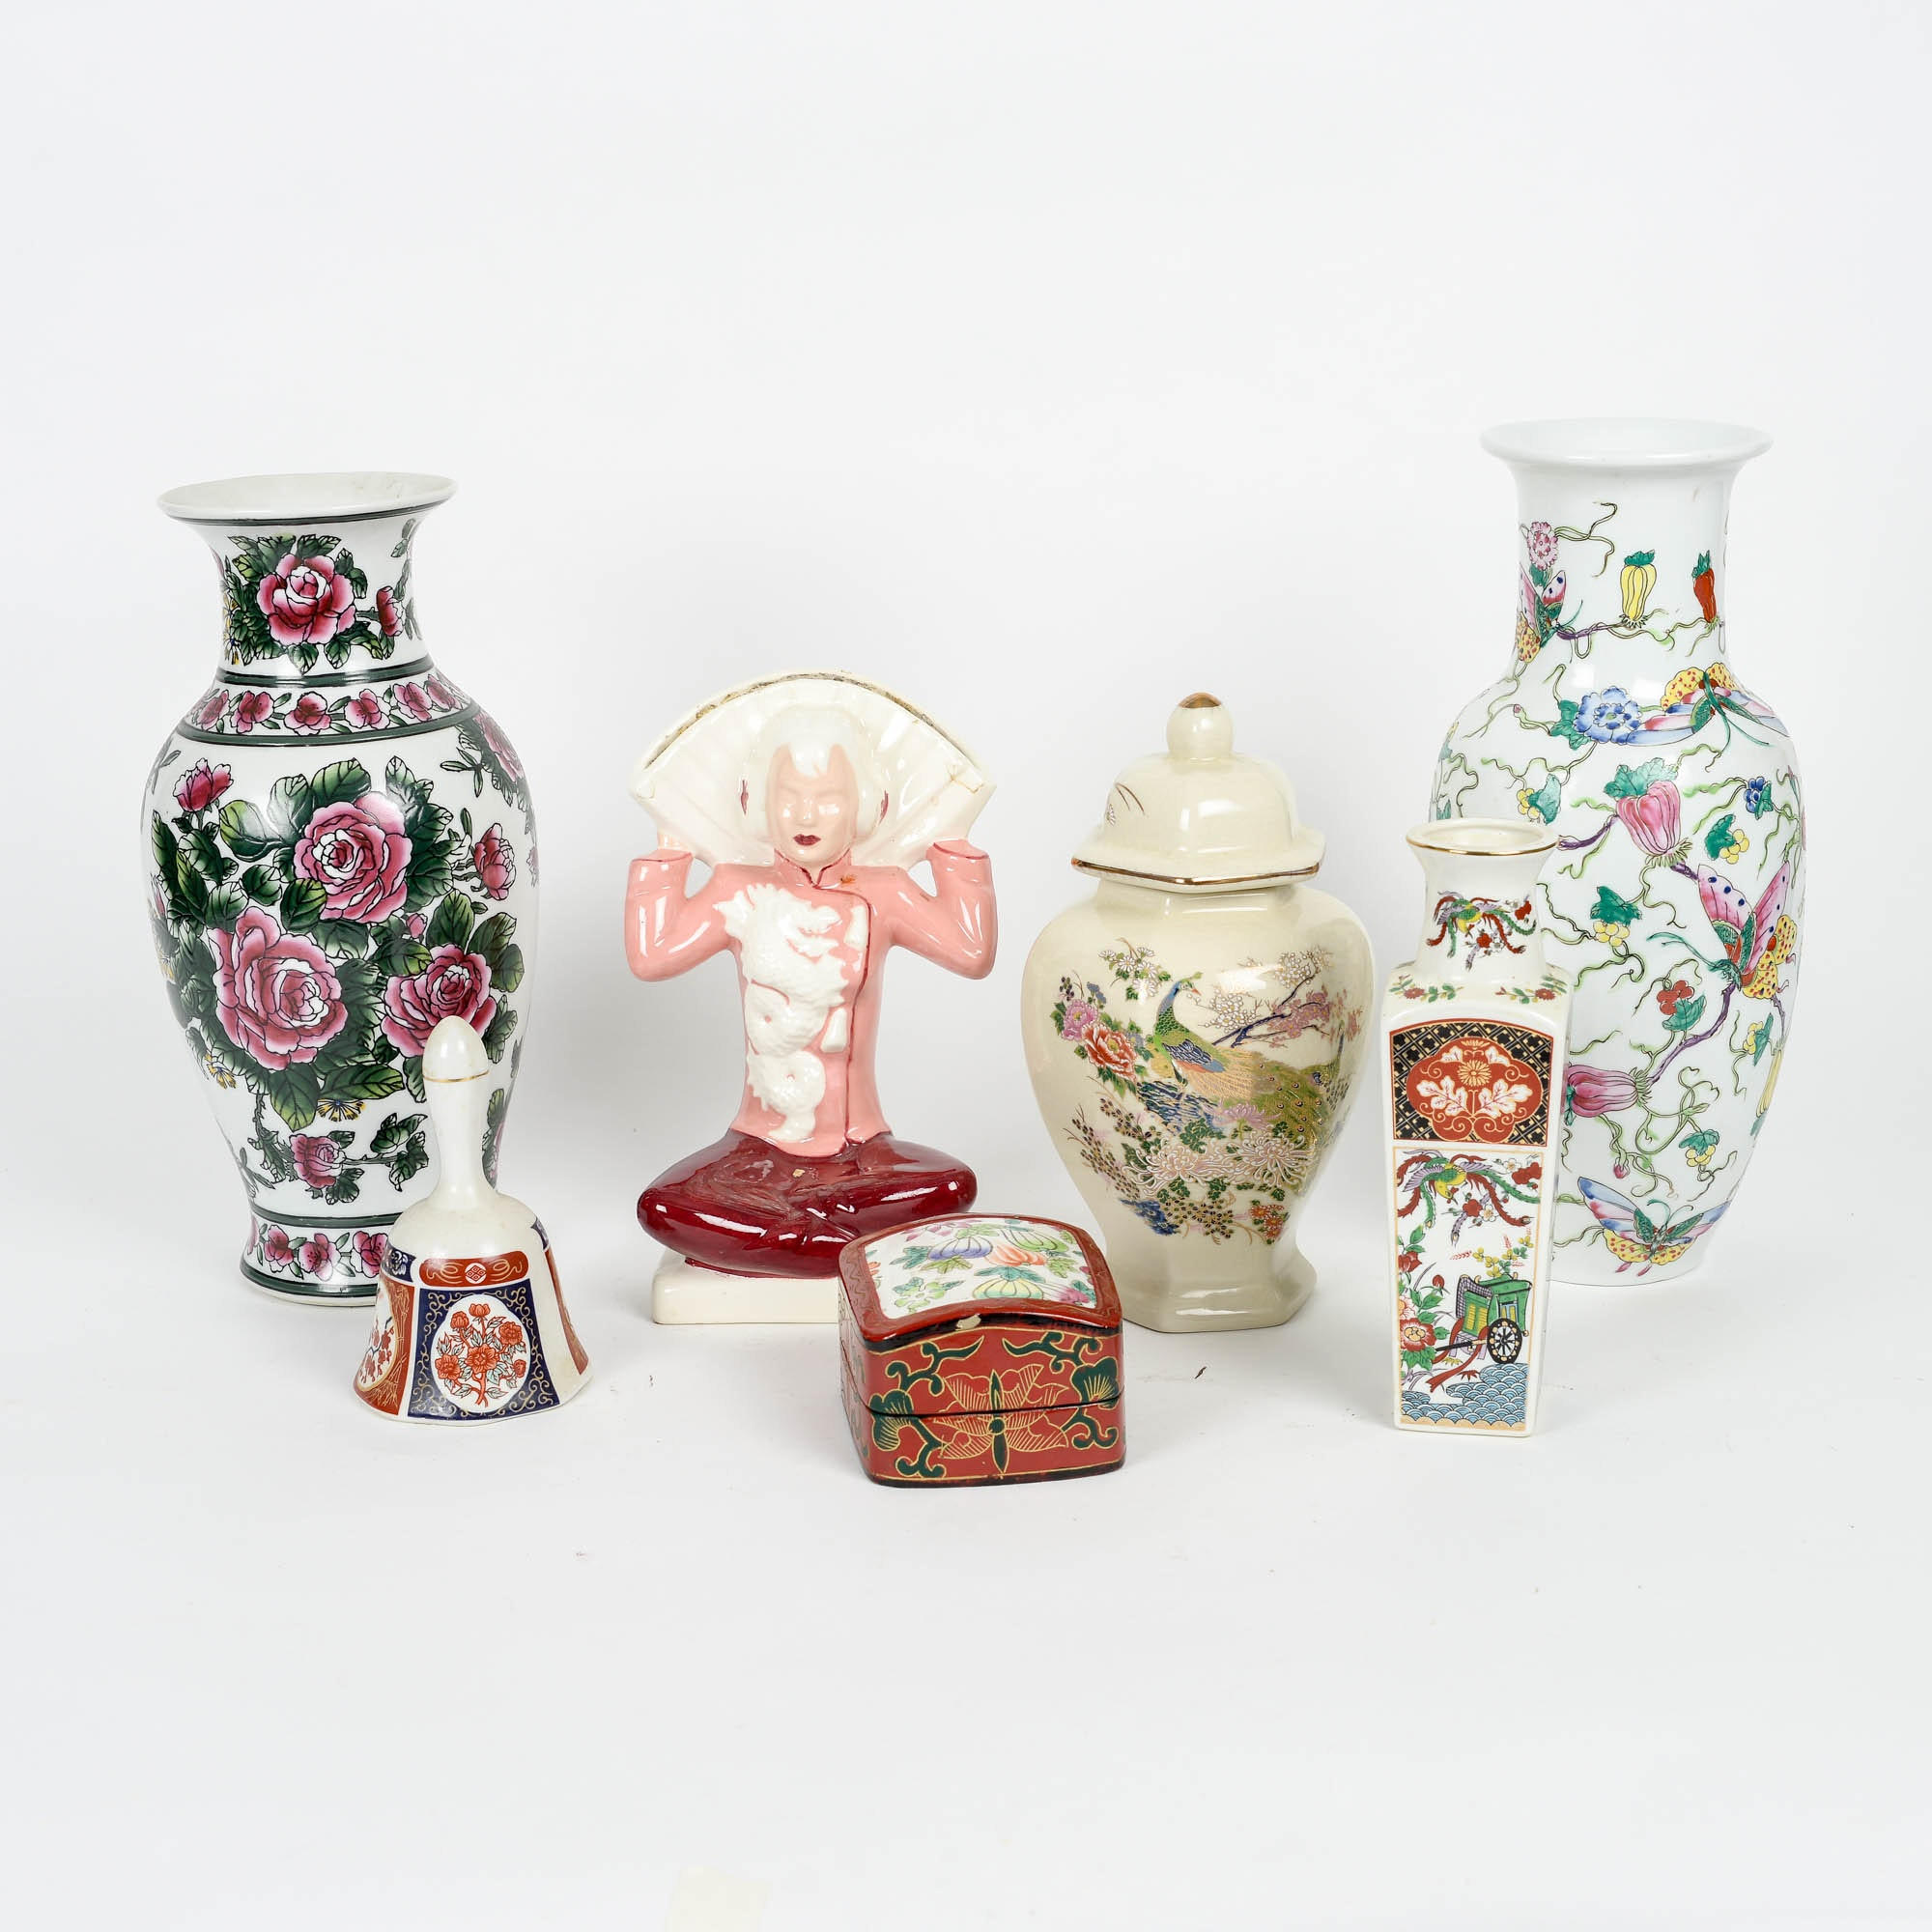 Collection of Asian Inspired Home Decor